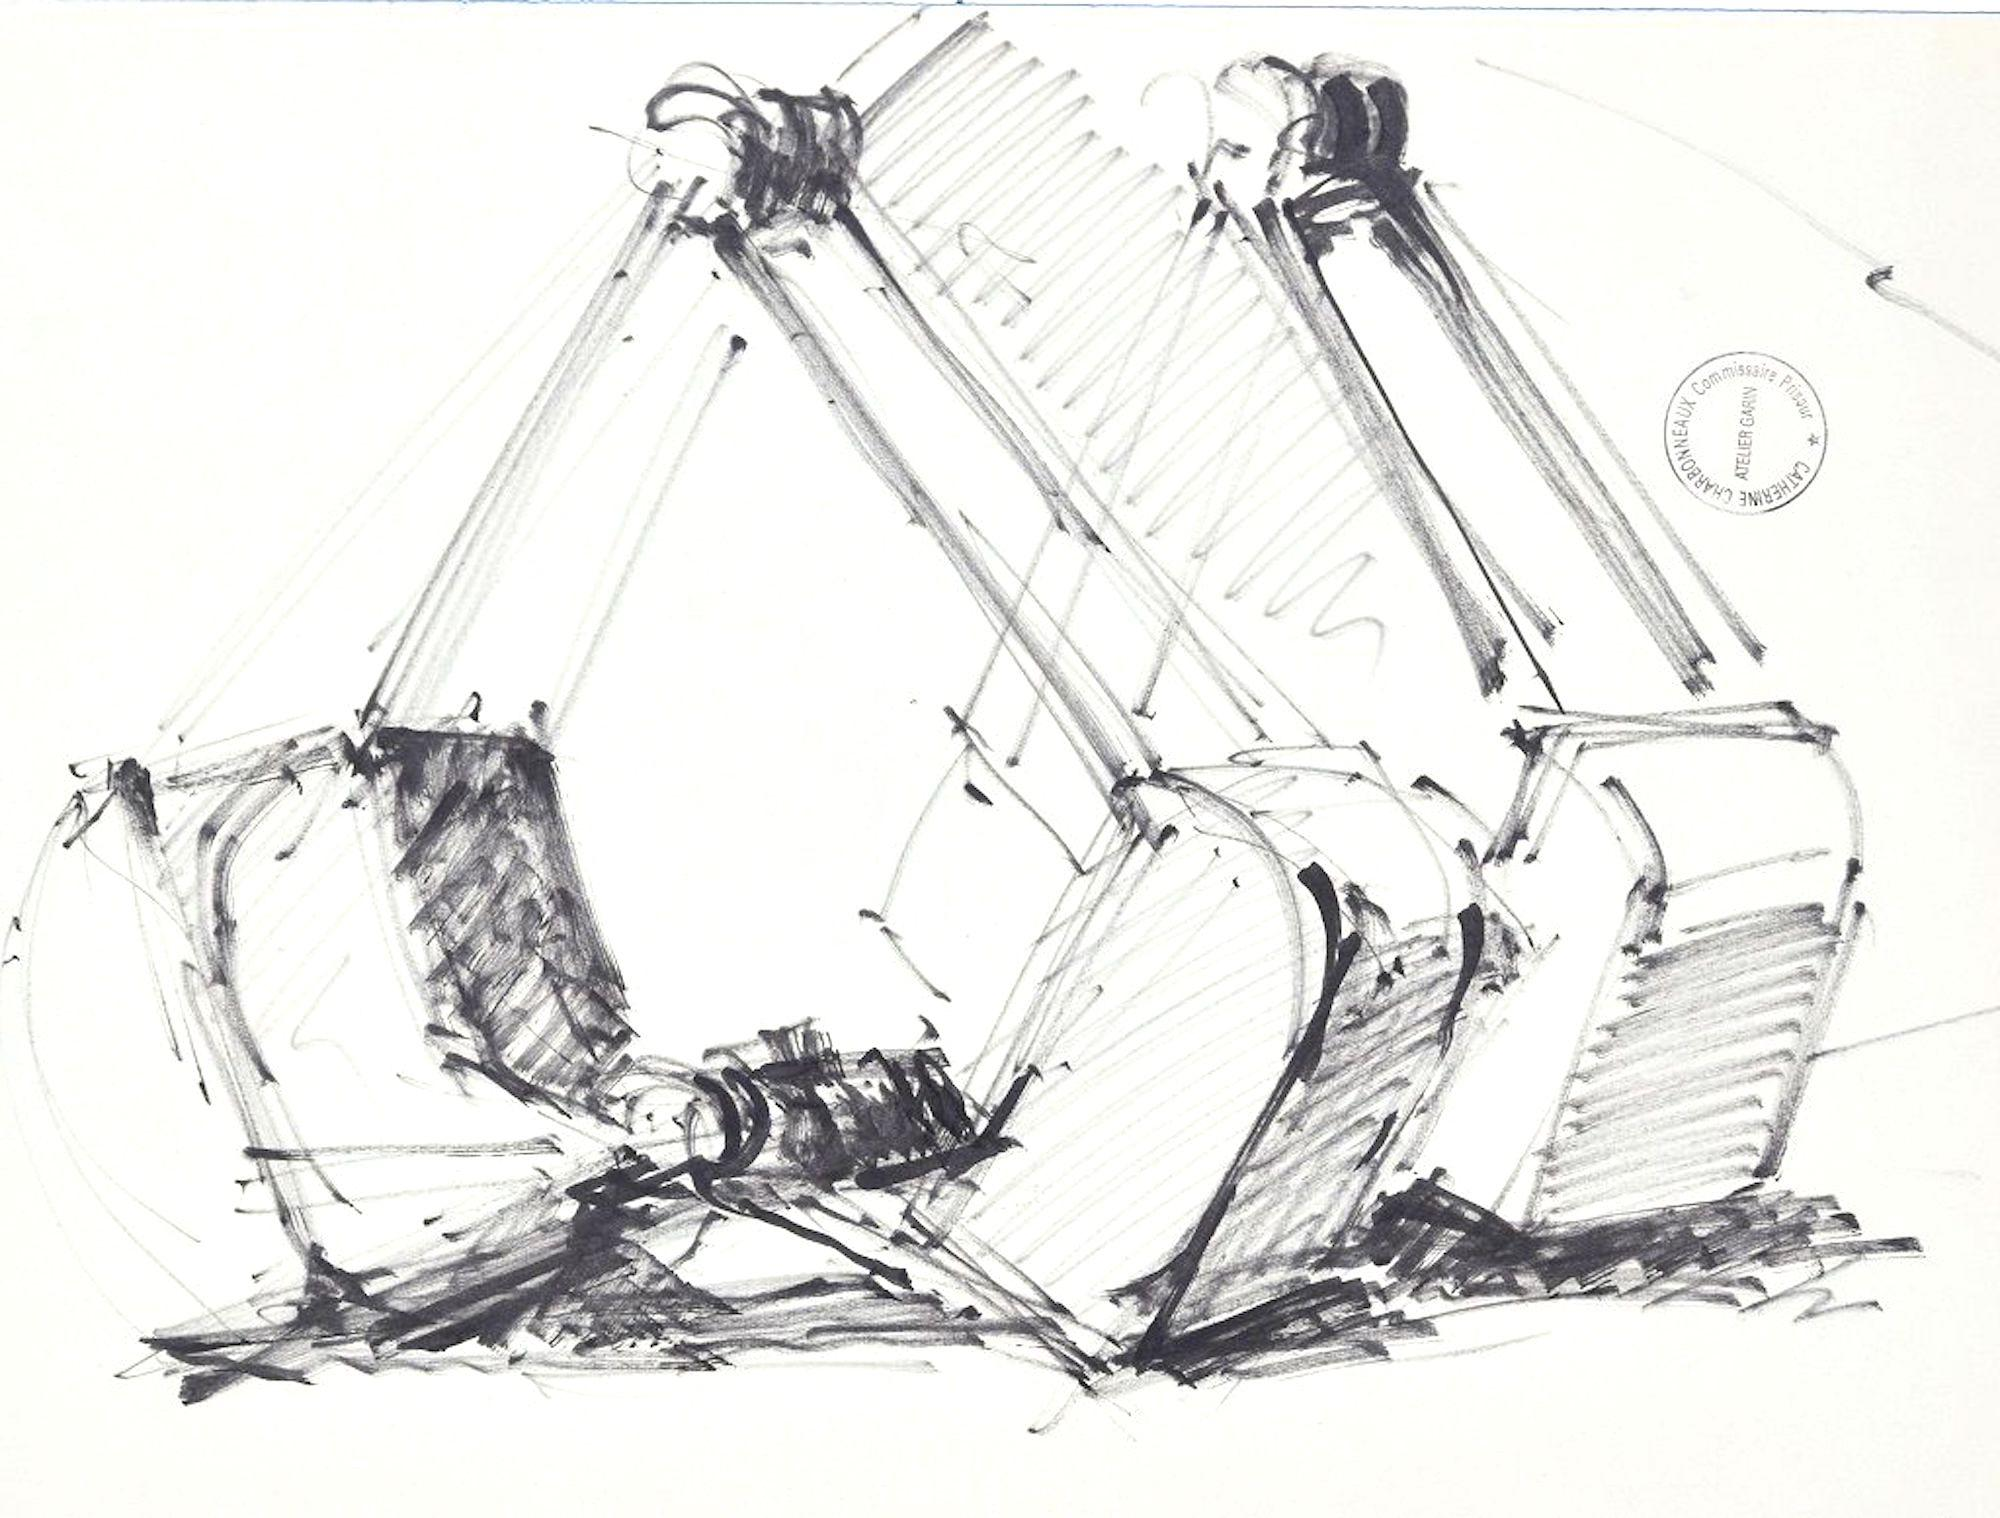 Machineries - Original Pen Drawing on Paper by Paul Garin - 1950s